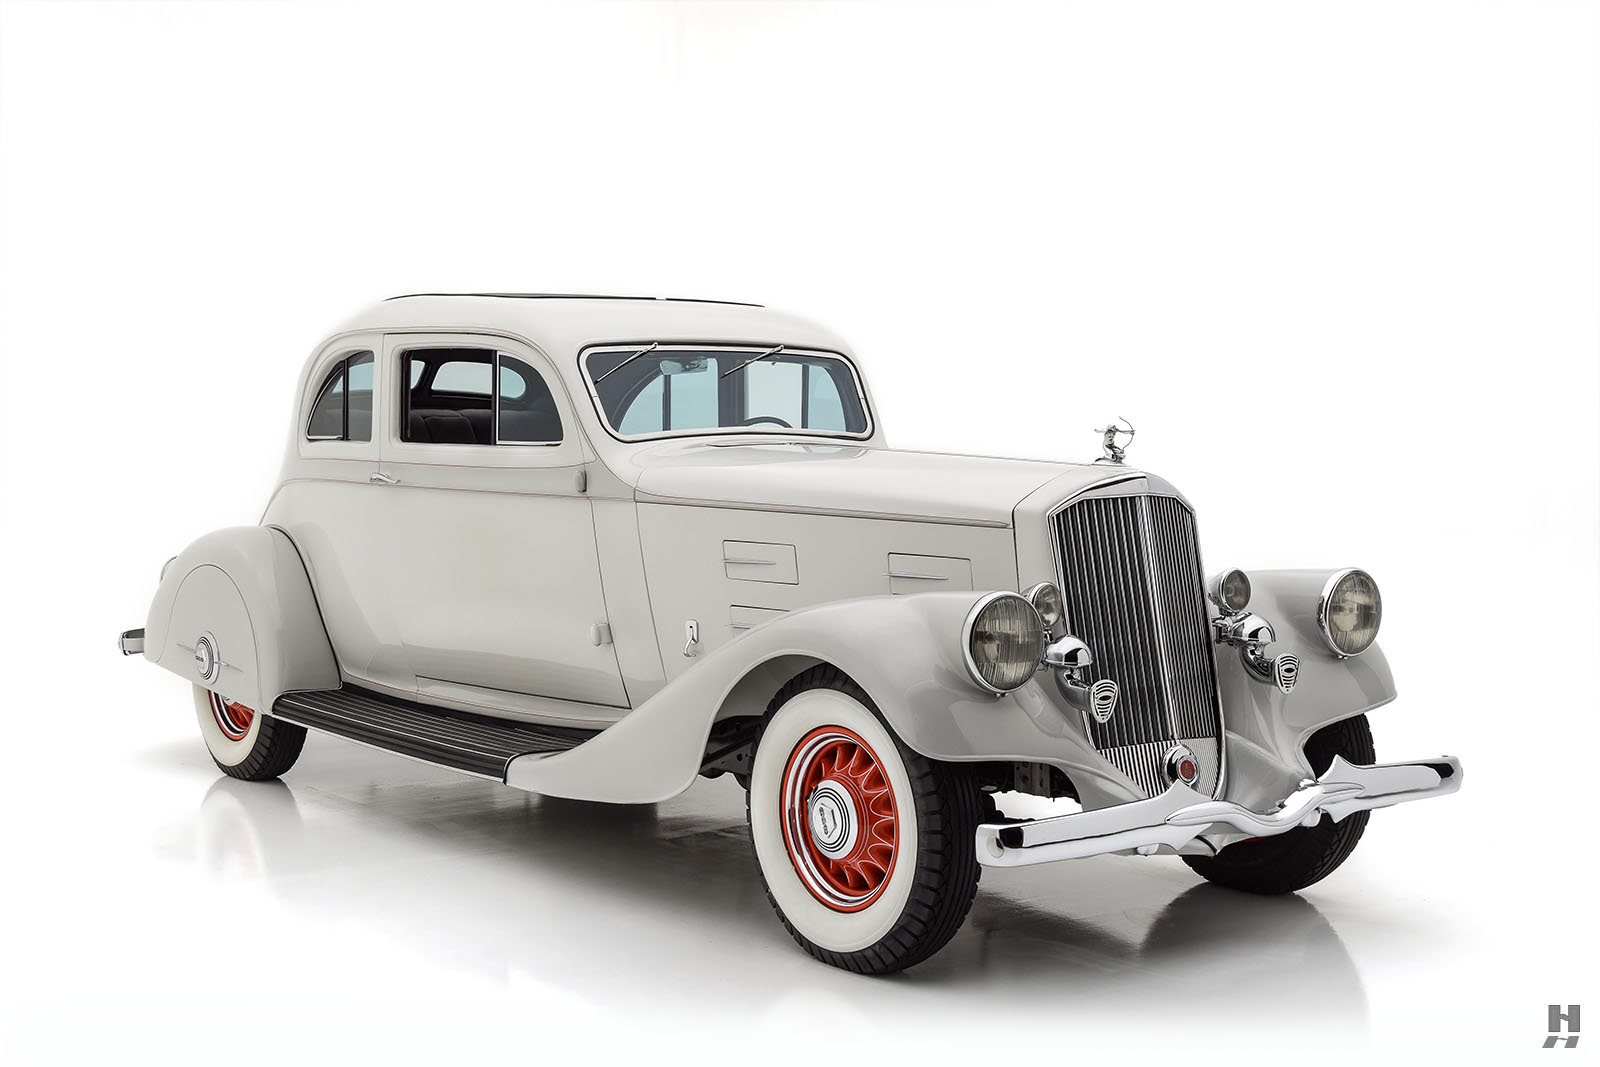 1934 PIERCE ARROW MODEL 840A SILVER ARROW COUPE For Sale (picture 2 of 6)